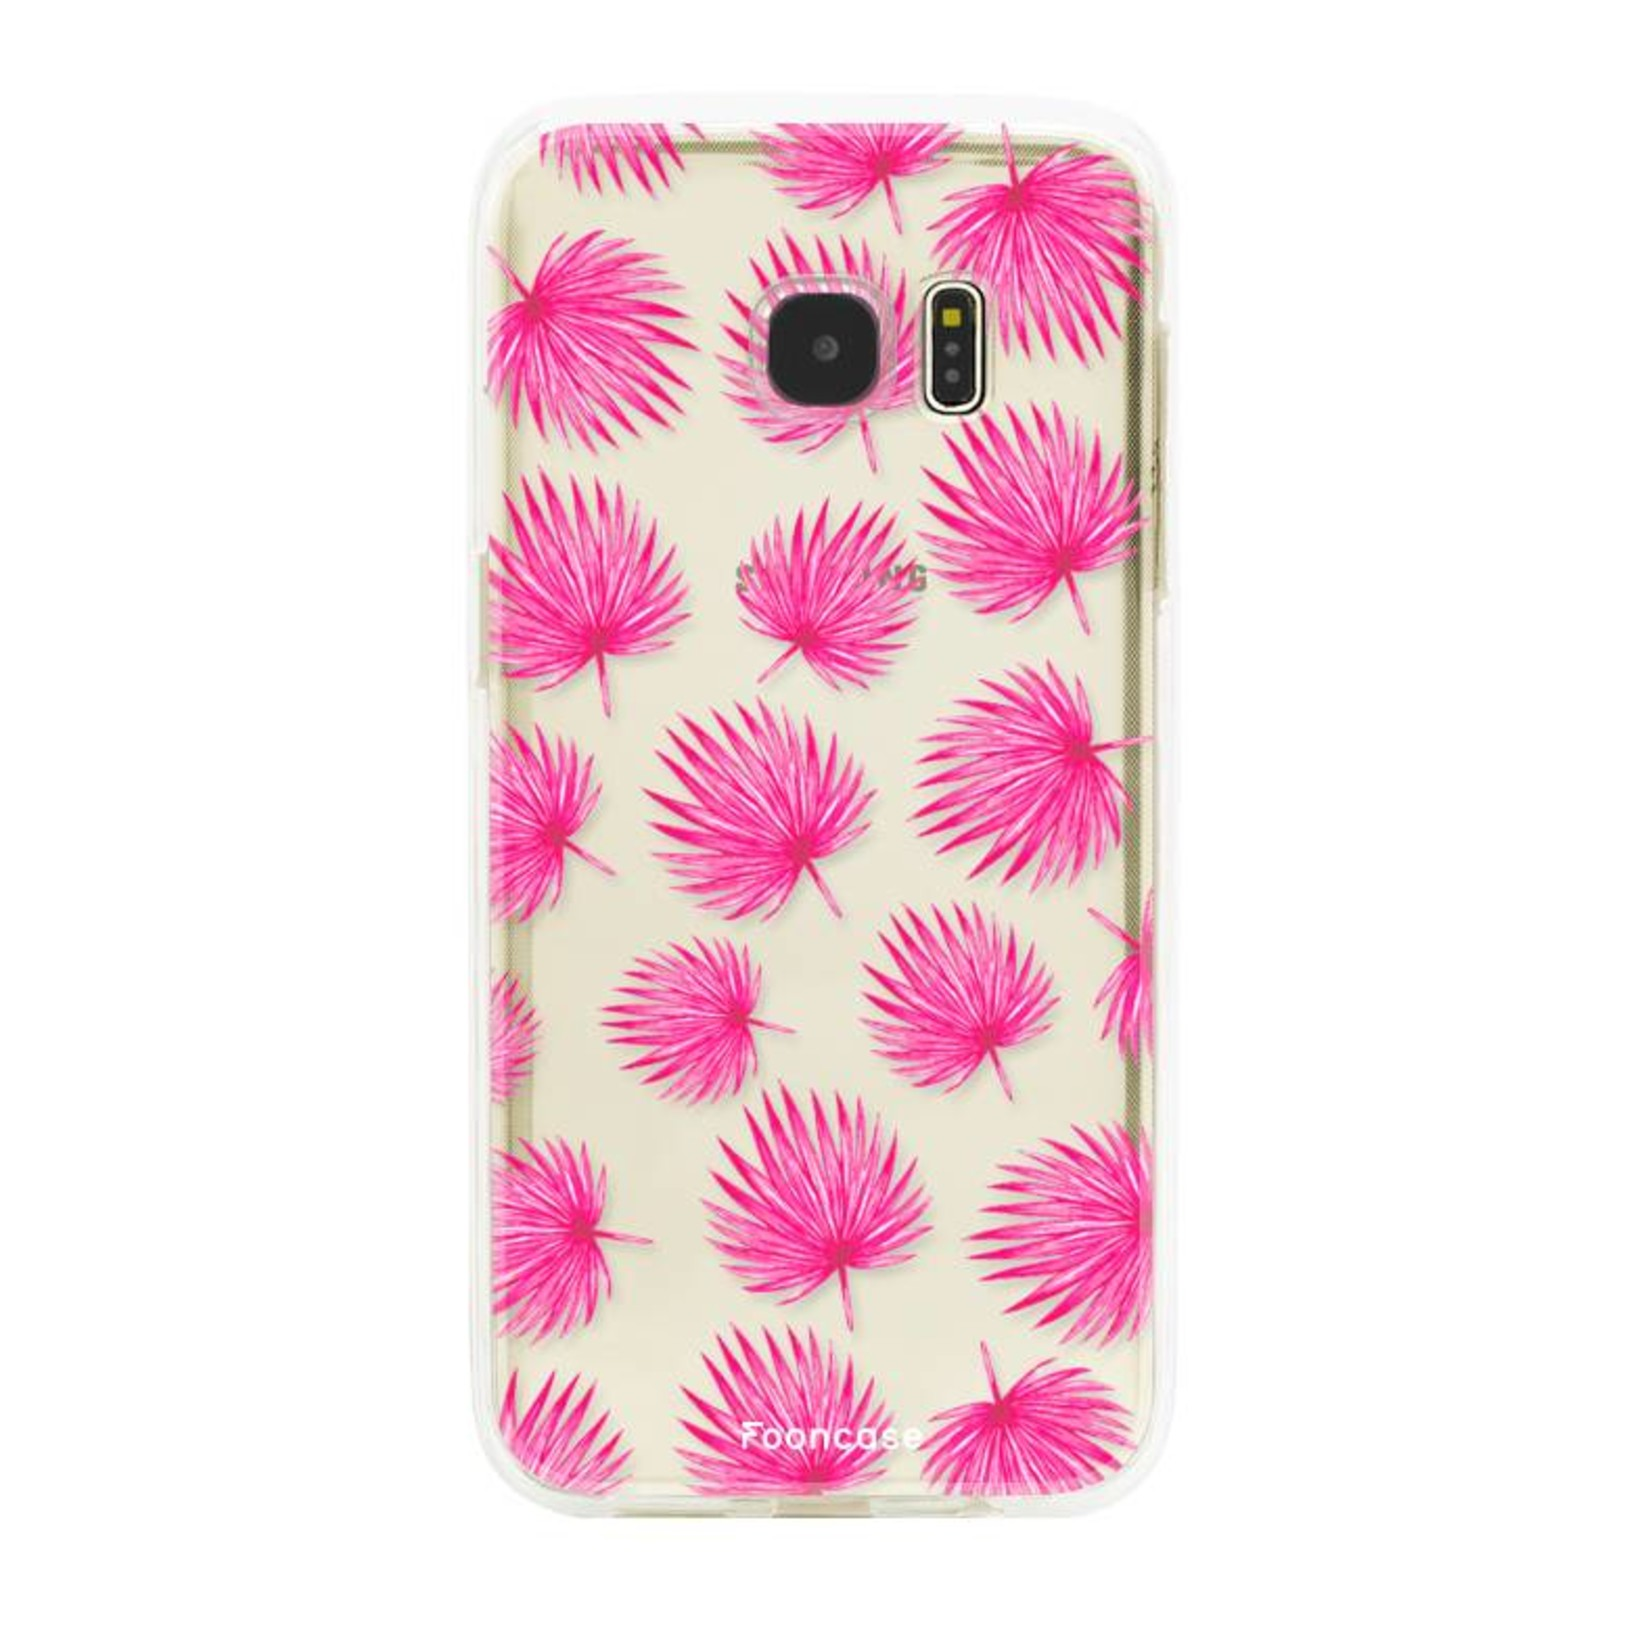 FOONCASE Samsung Galaxy S7 Edge hoesje TPU Soft Case - Back Cover - Pink leaves / Roze bladeren